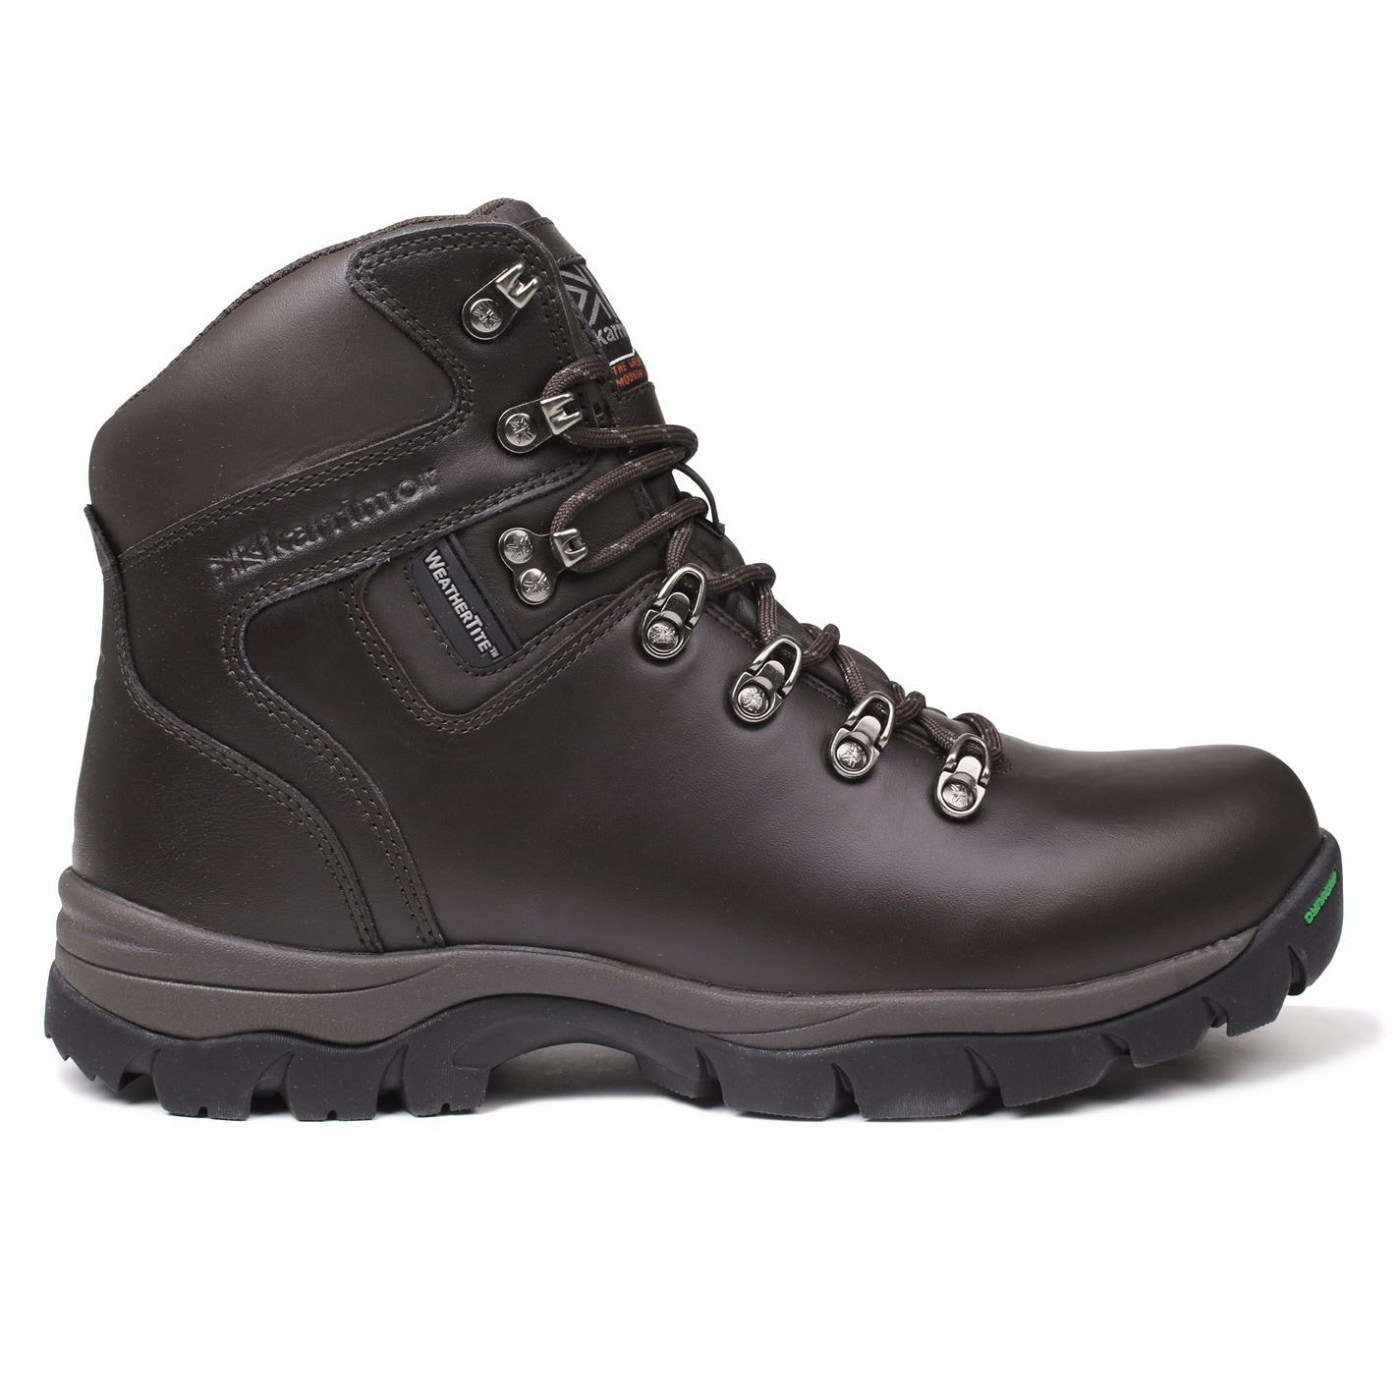 Karrimor Skiddaw Mens Walking Boots